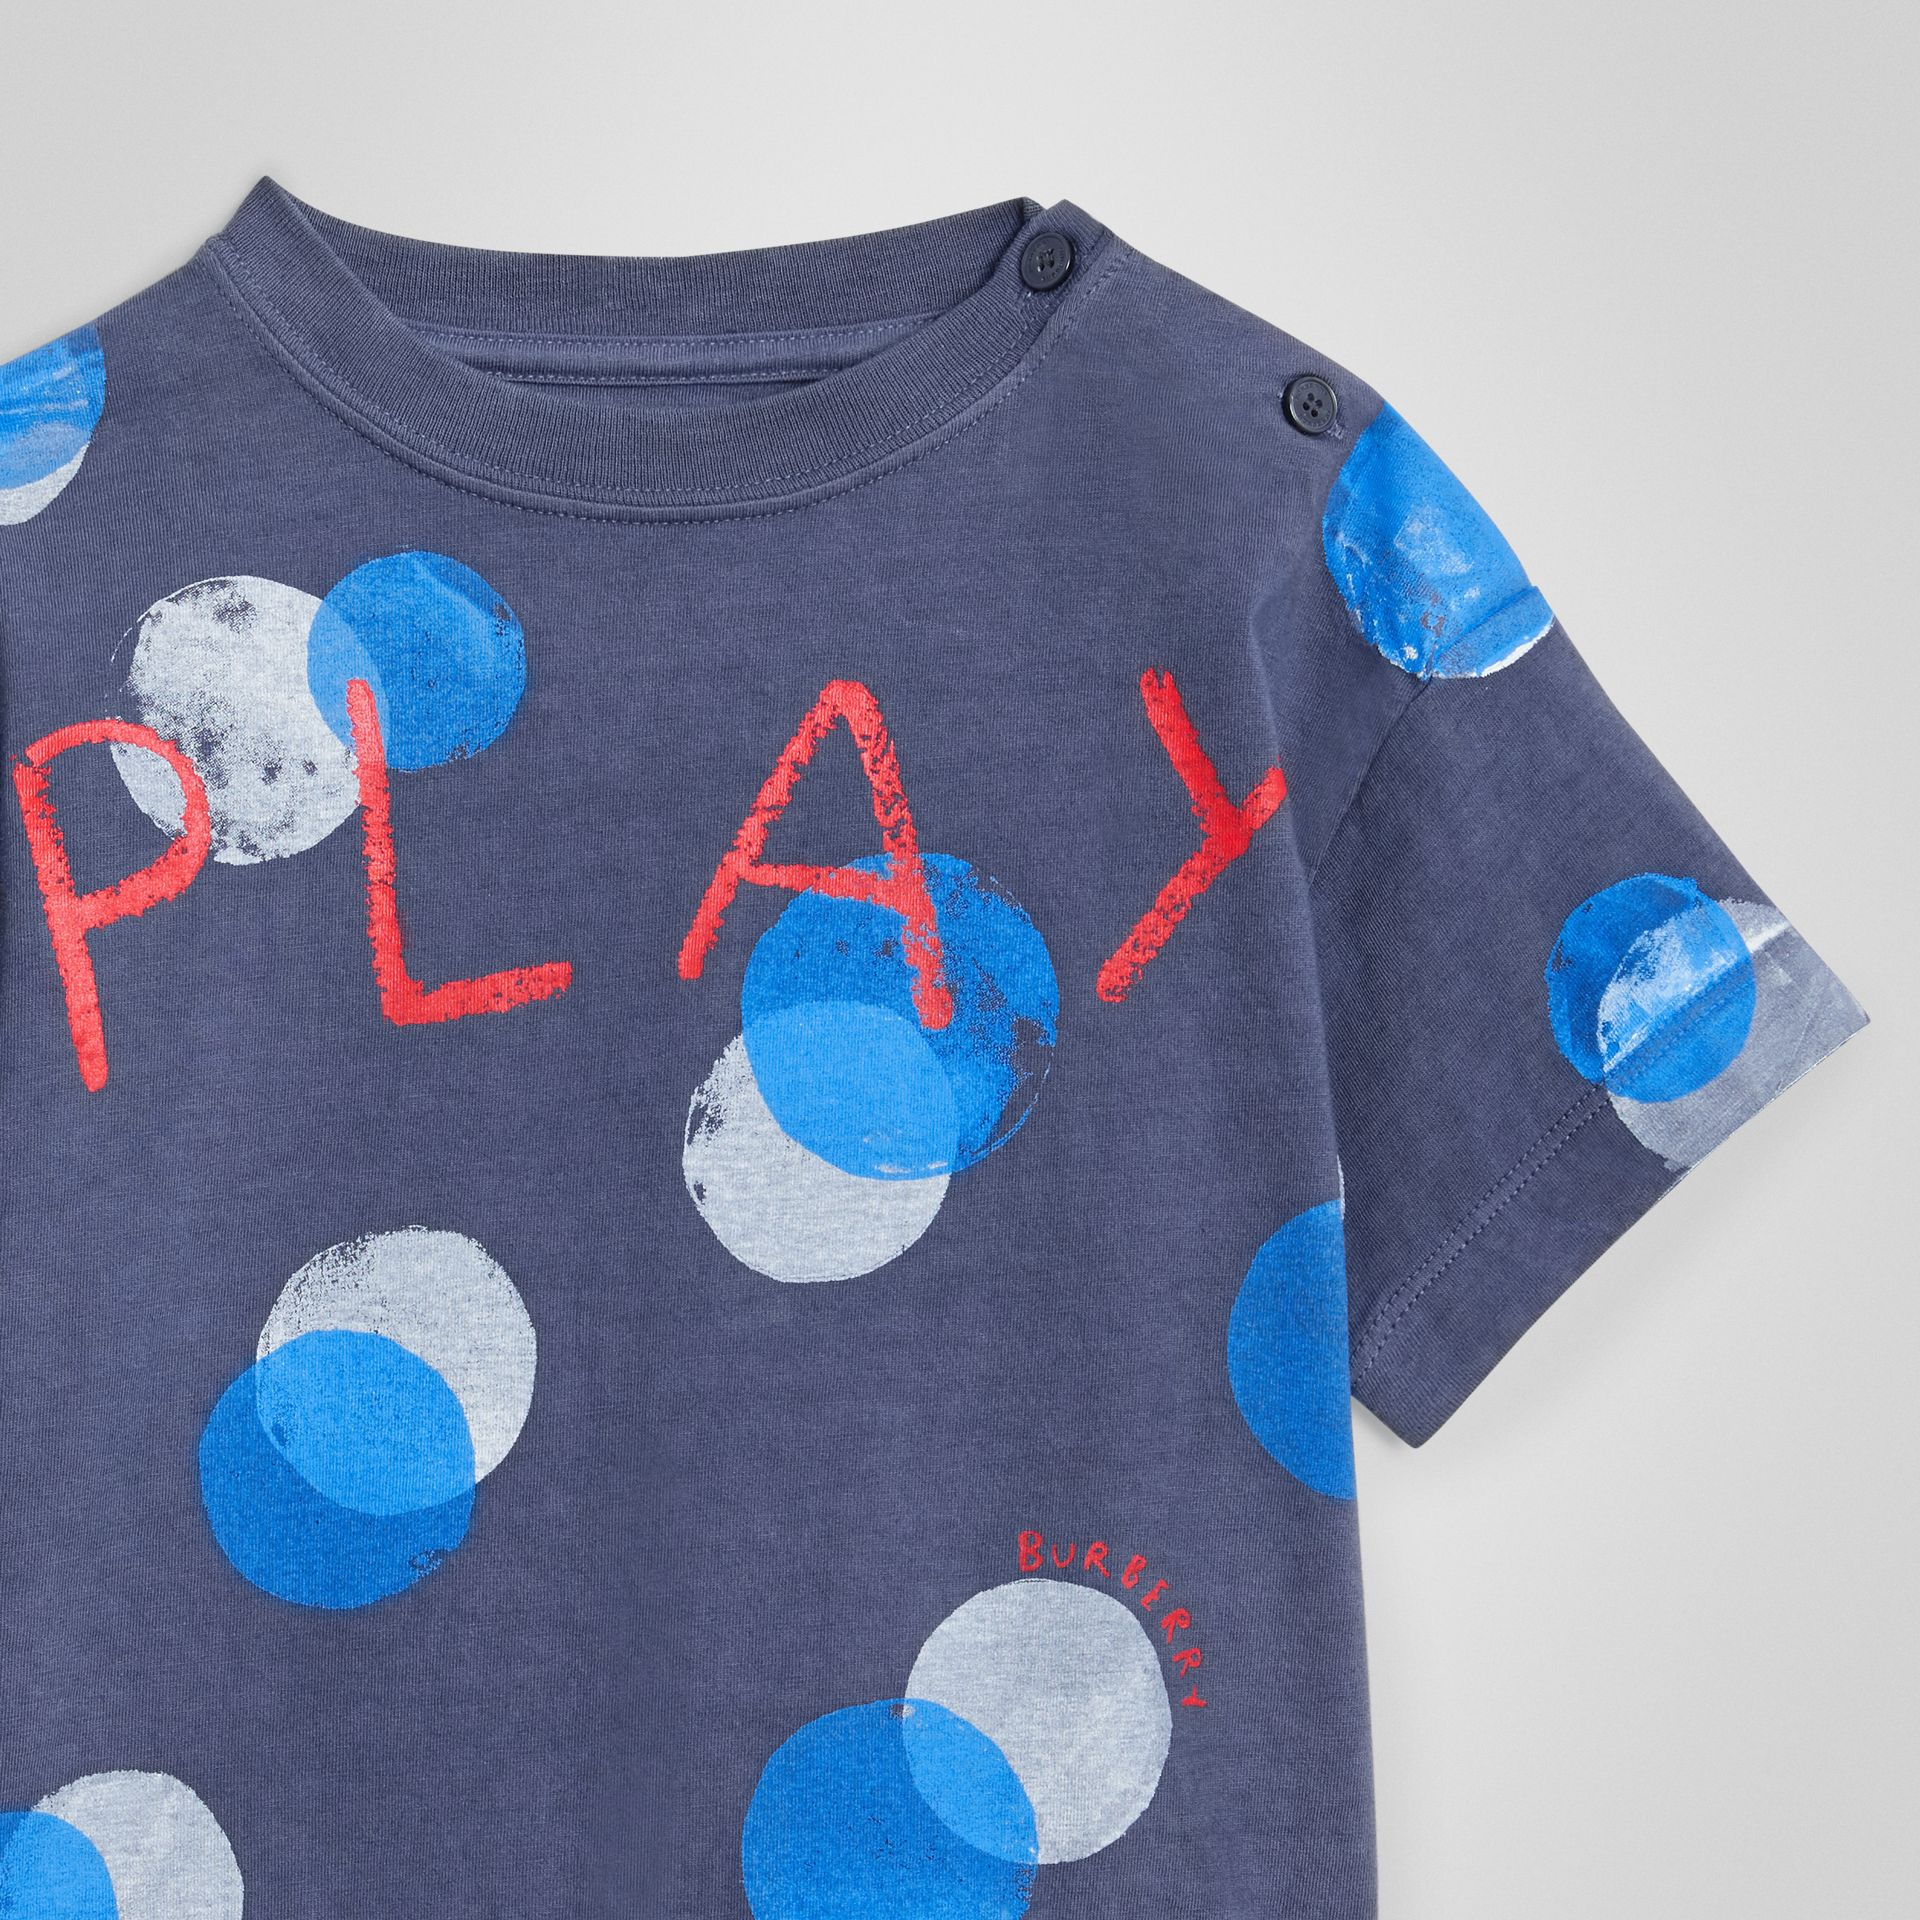 Oversized Spot Print Cotton T-shirt in Navy Melange - Children | Burberry Canada - gallery image 4